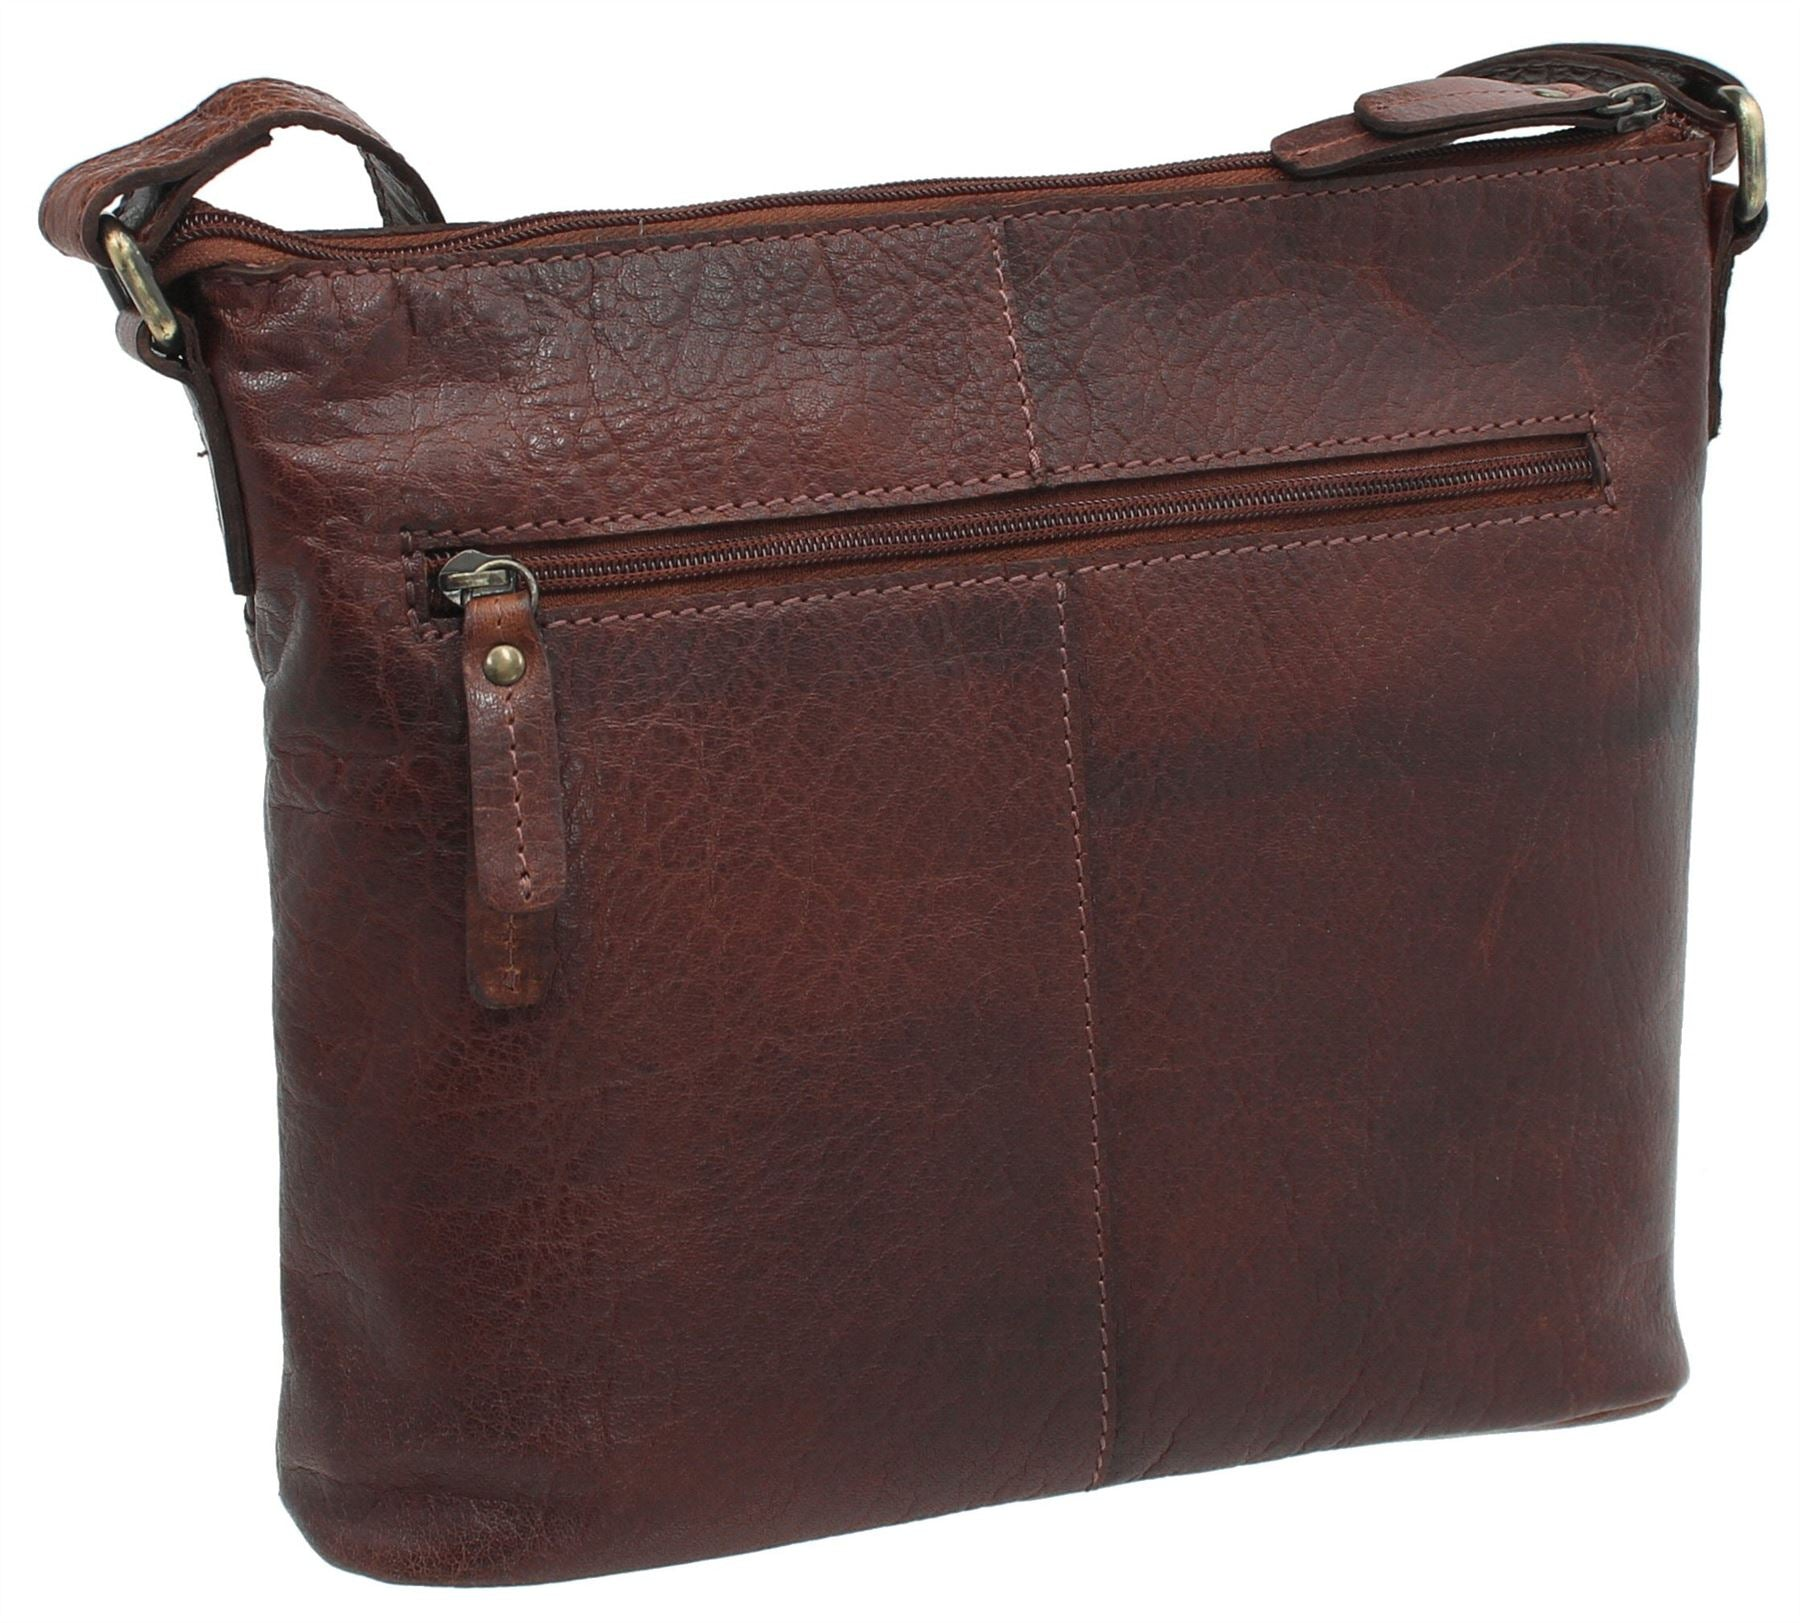 Mala Leather Warwick Collection Leather Shoulder Bag 7157/_26